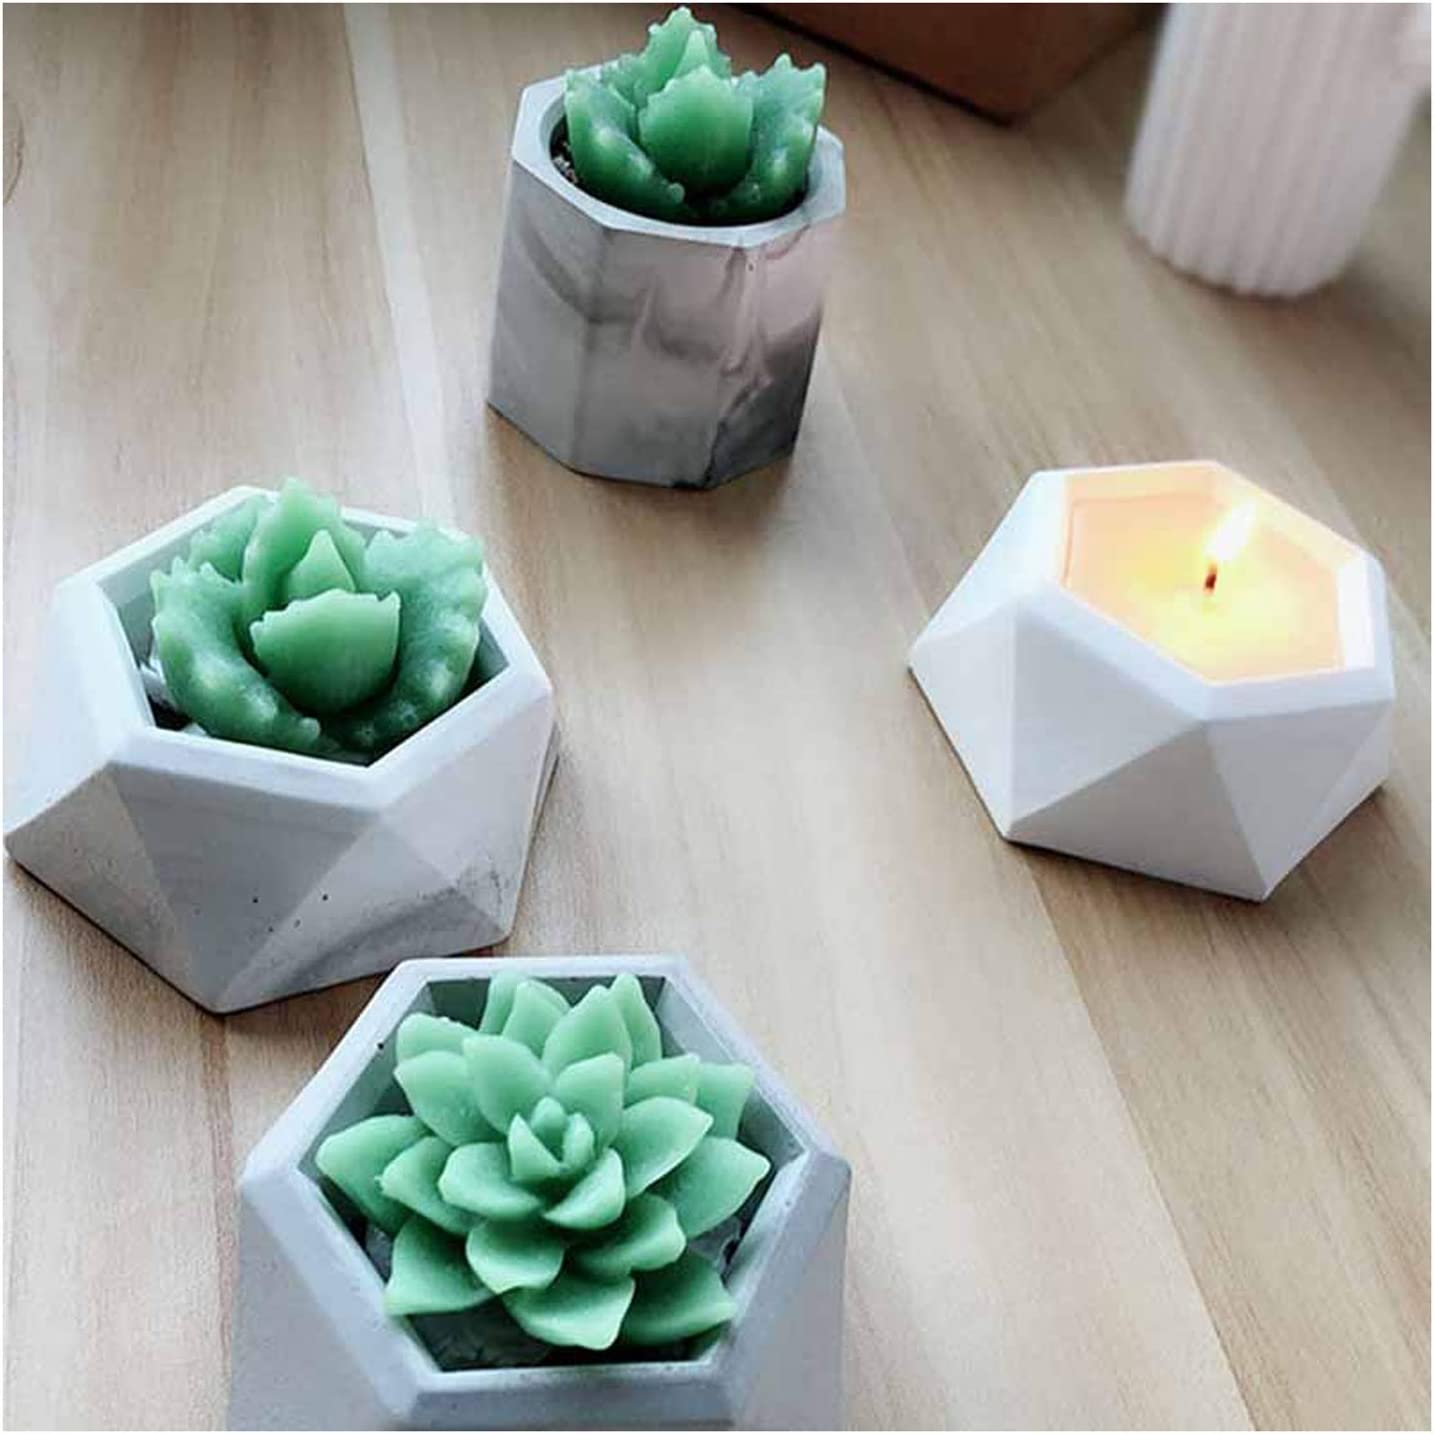 Flower Large-scale sale New York Mall Decorative Molding MKLP Resin Pla Silicone Mold Succulent